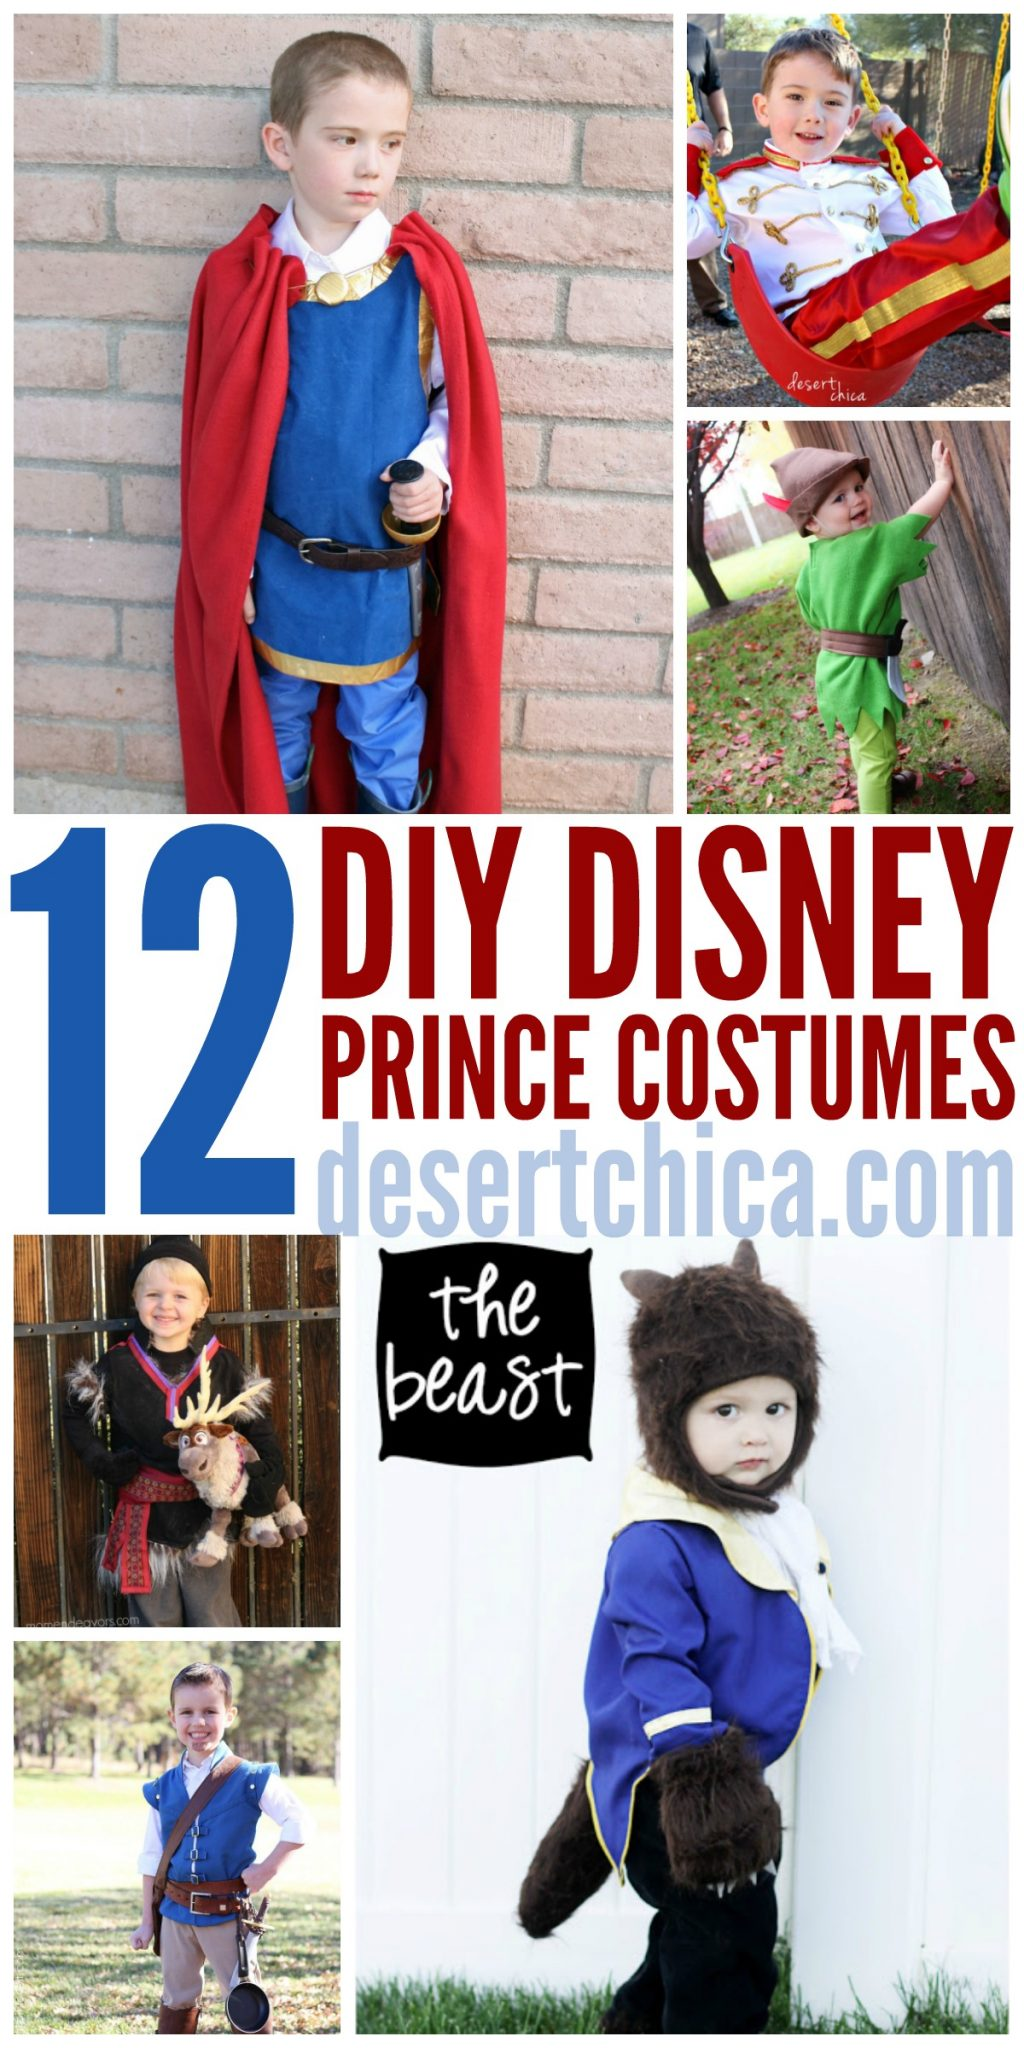 Looking for an adorable DIY Disney Prince costume? I've found 13 of the best homemade prince costumes! Perfect for a Disney trip or Halloween costume.